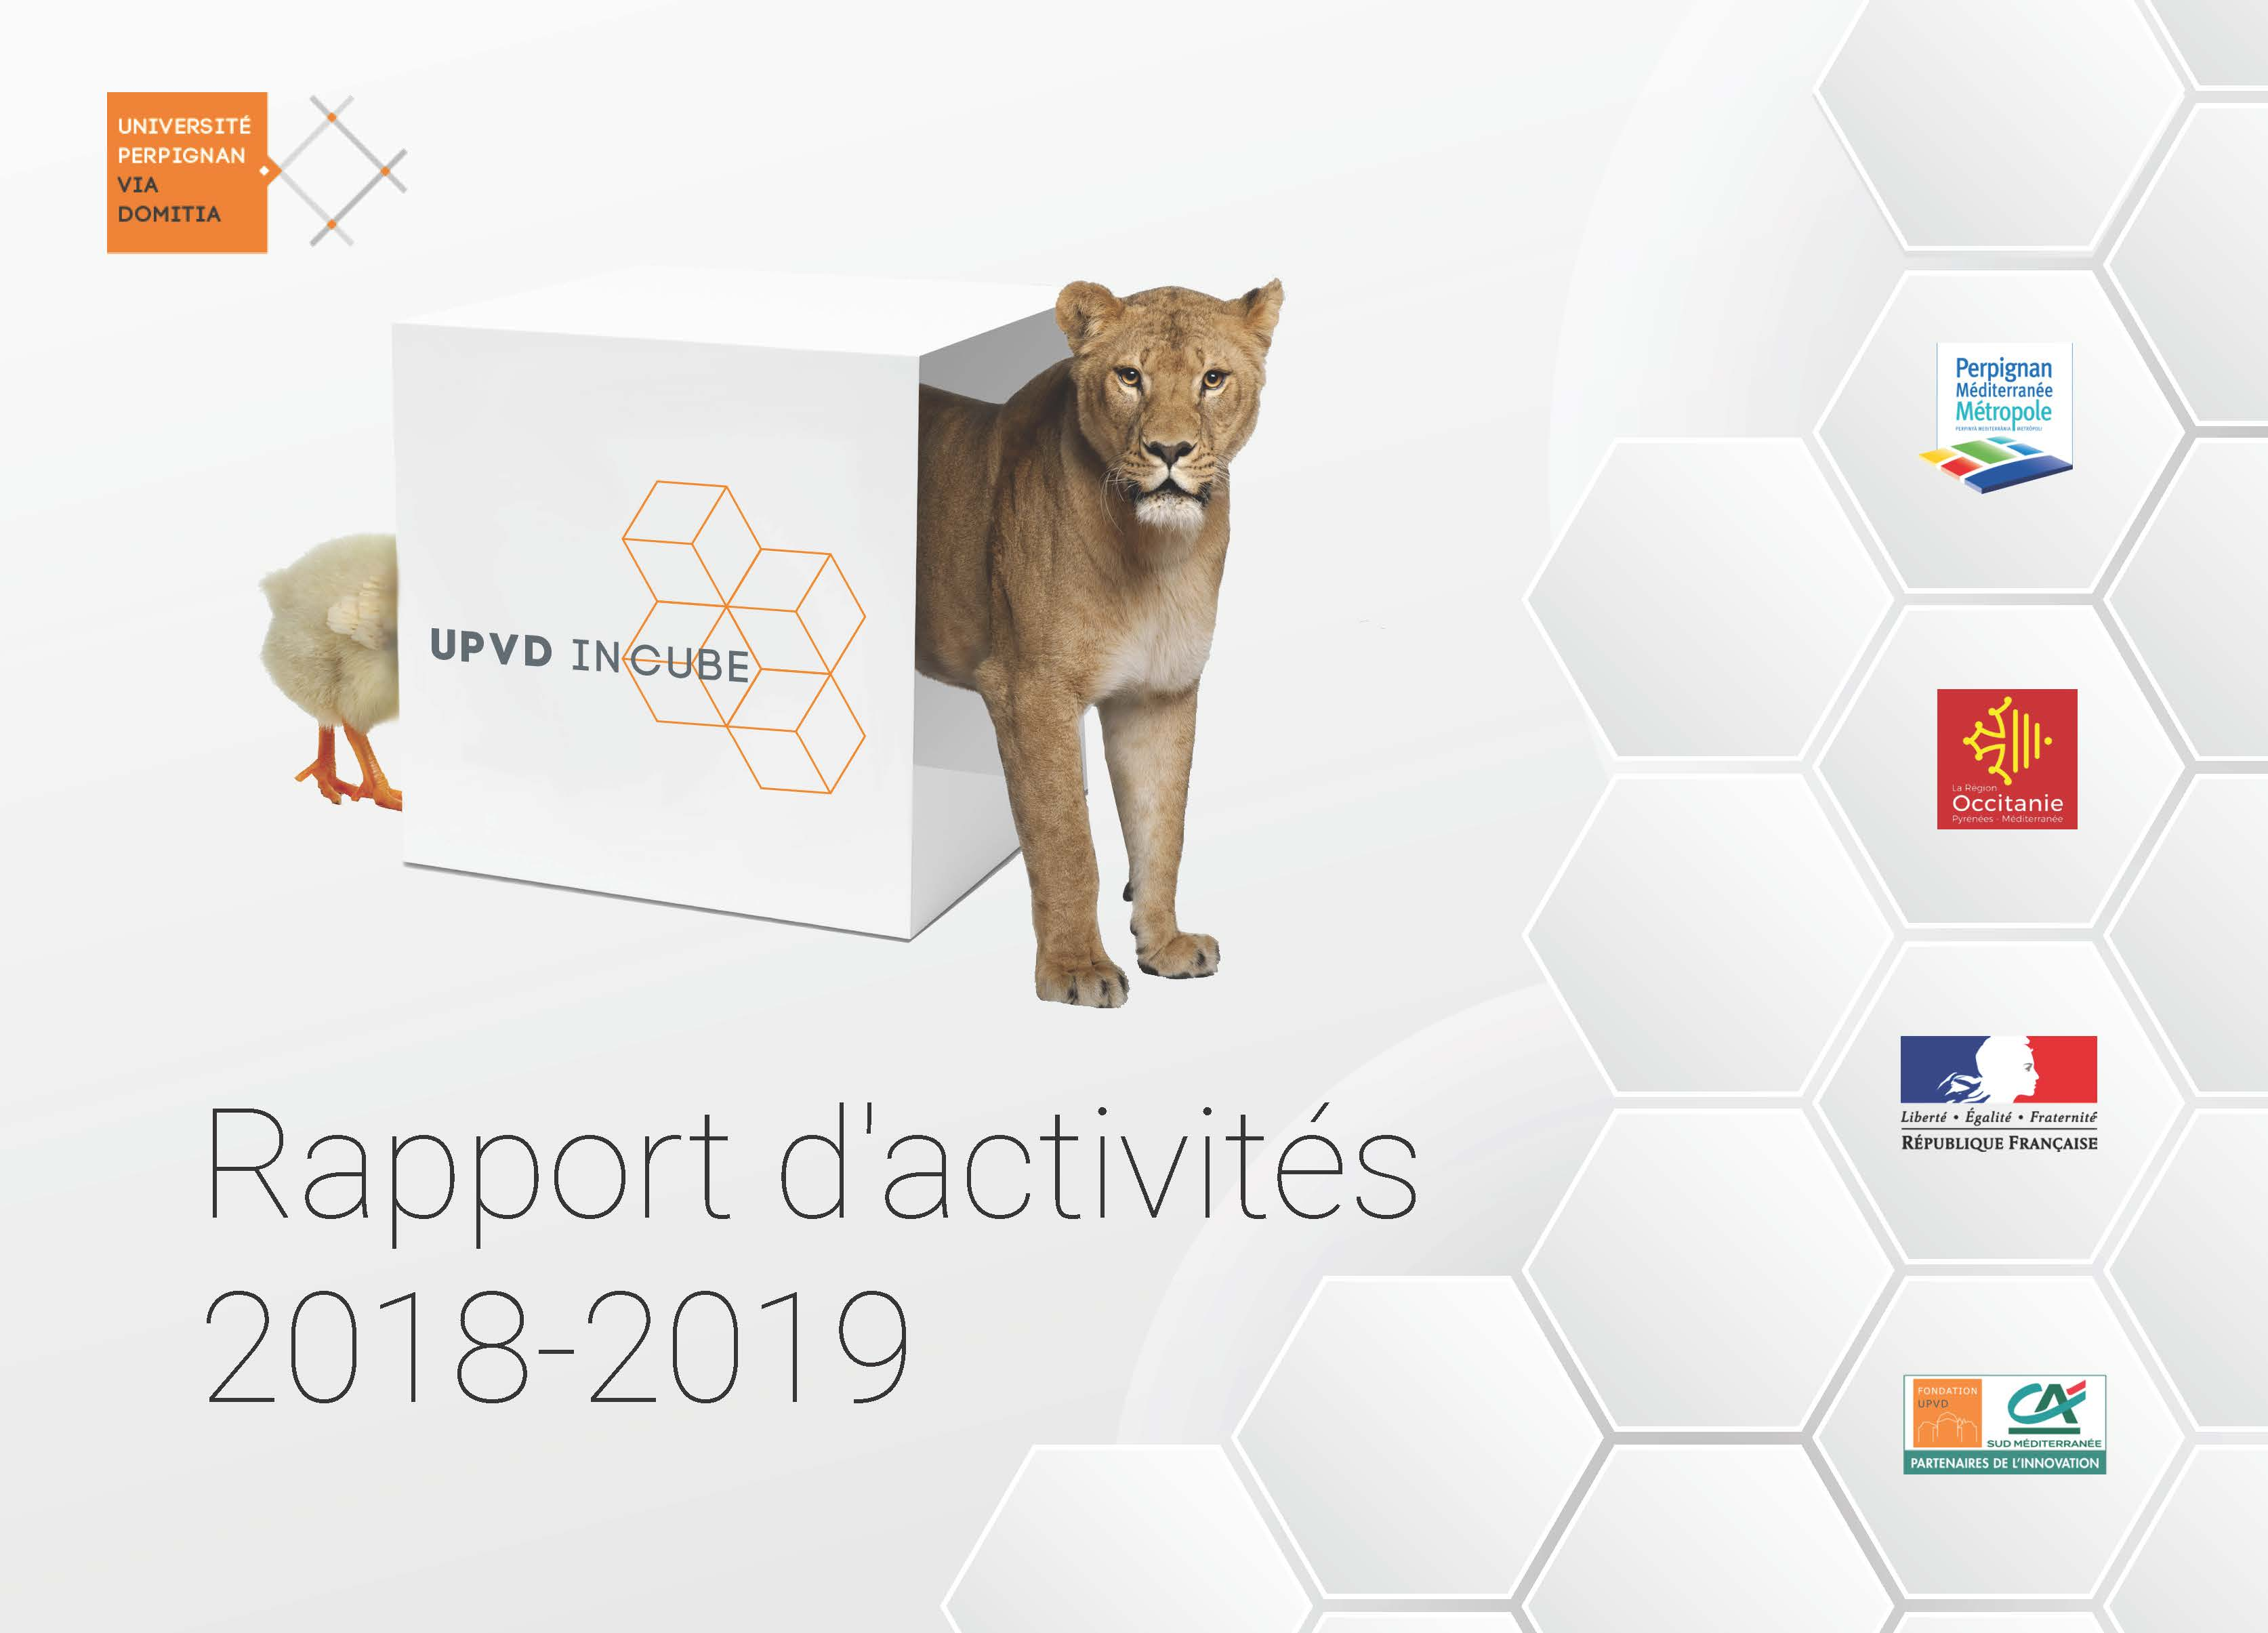 Rapport dactivits 2018 2019 UPVD IN CUBE Page 01